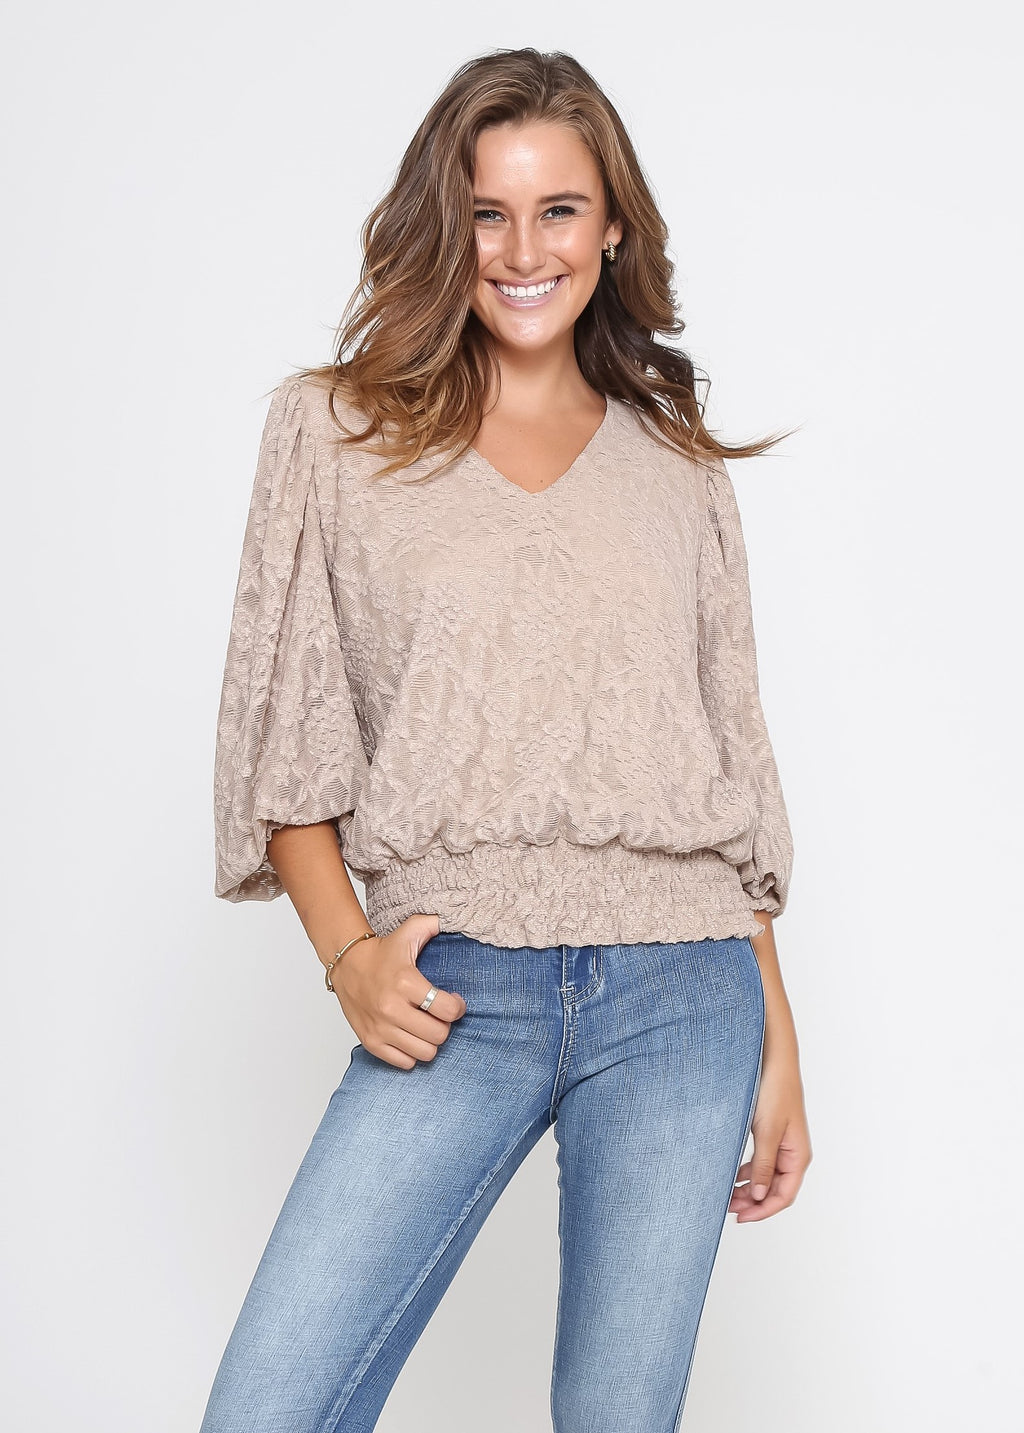 JESICA TOP - SAND LACE